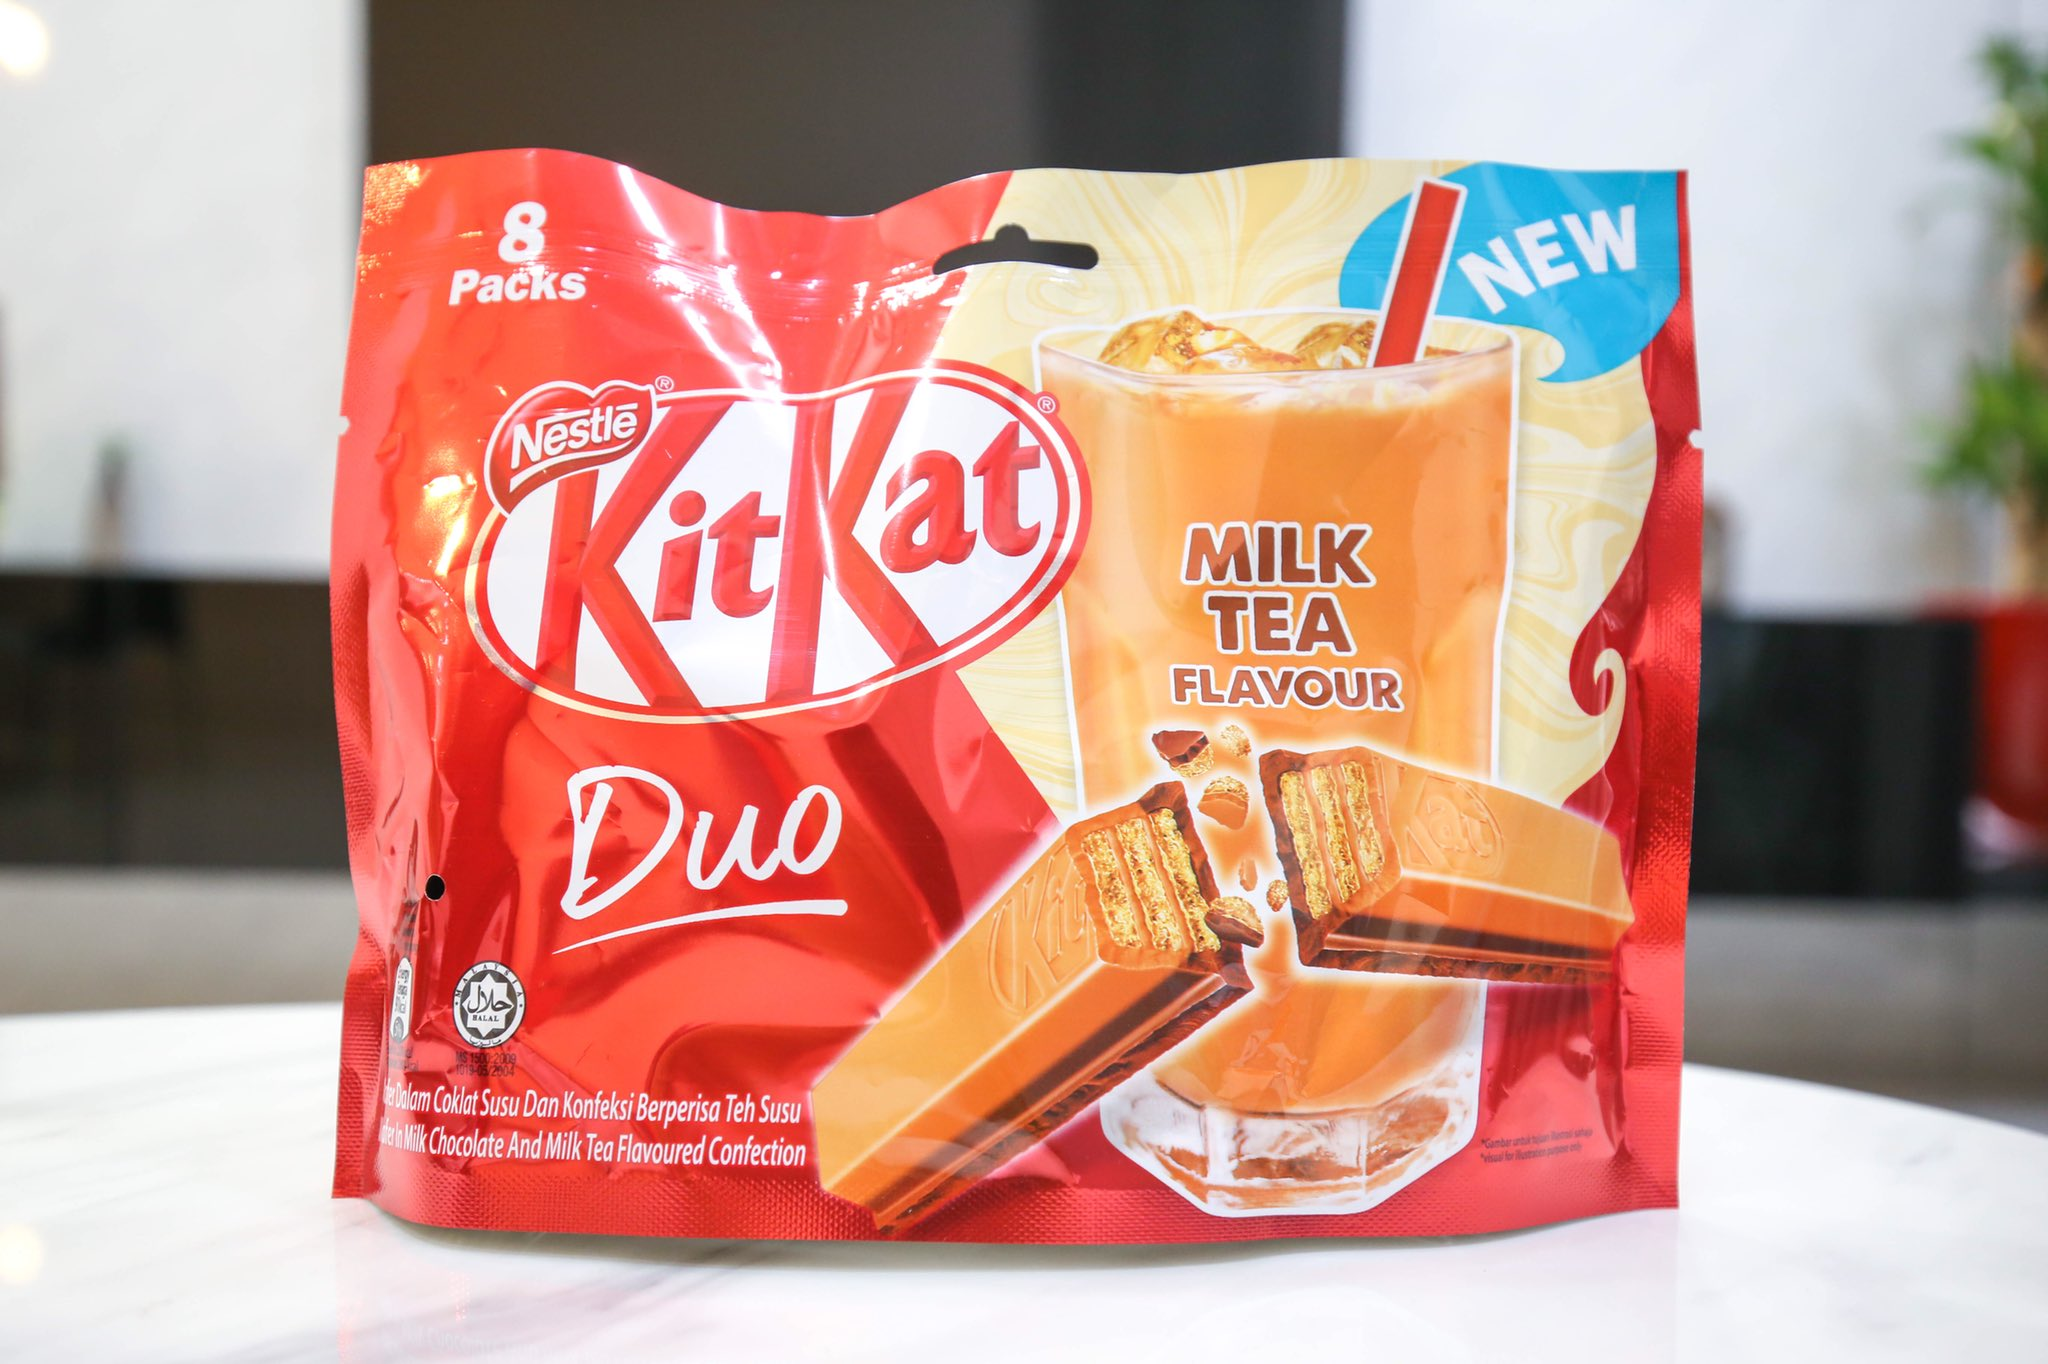 The new Milk Tea KitKat. https://t.co/xd8v7E7VnB